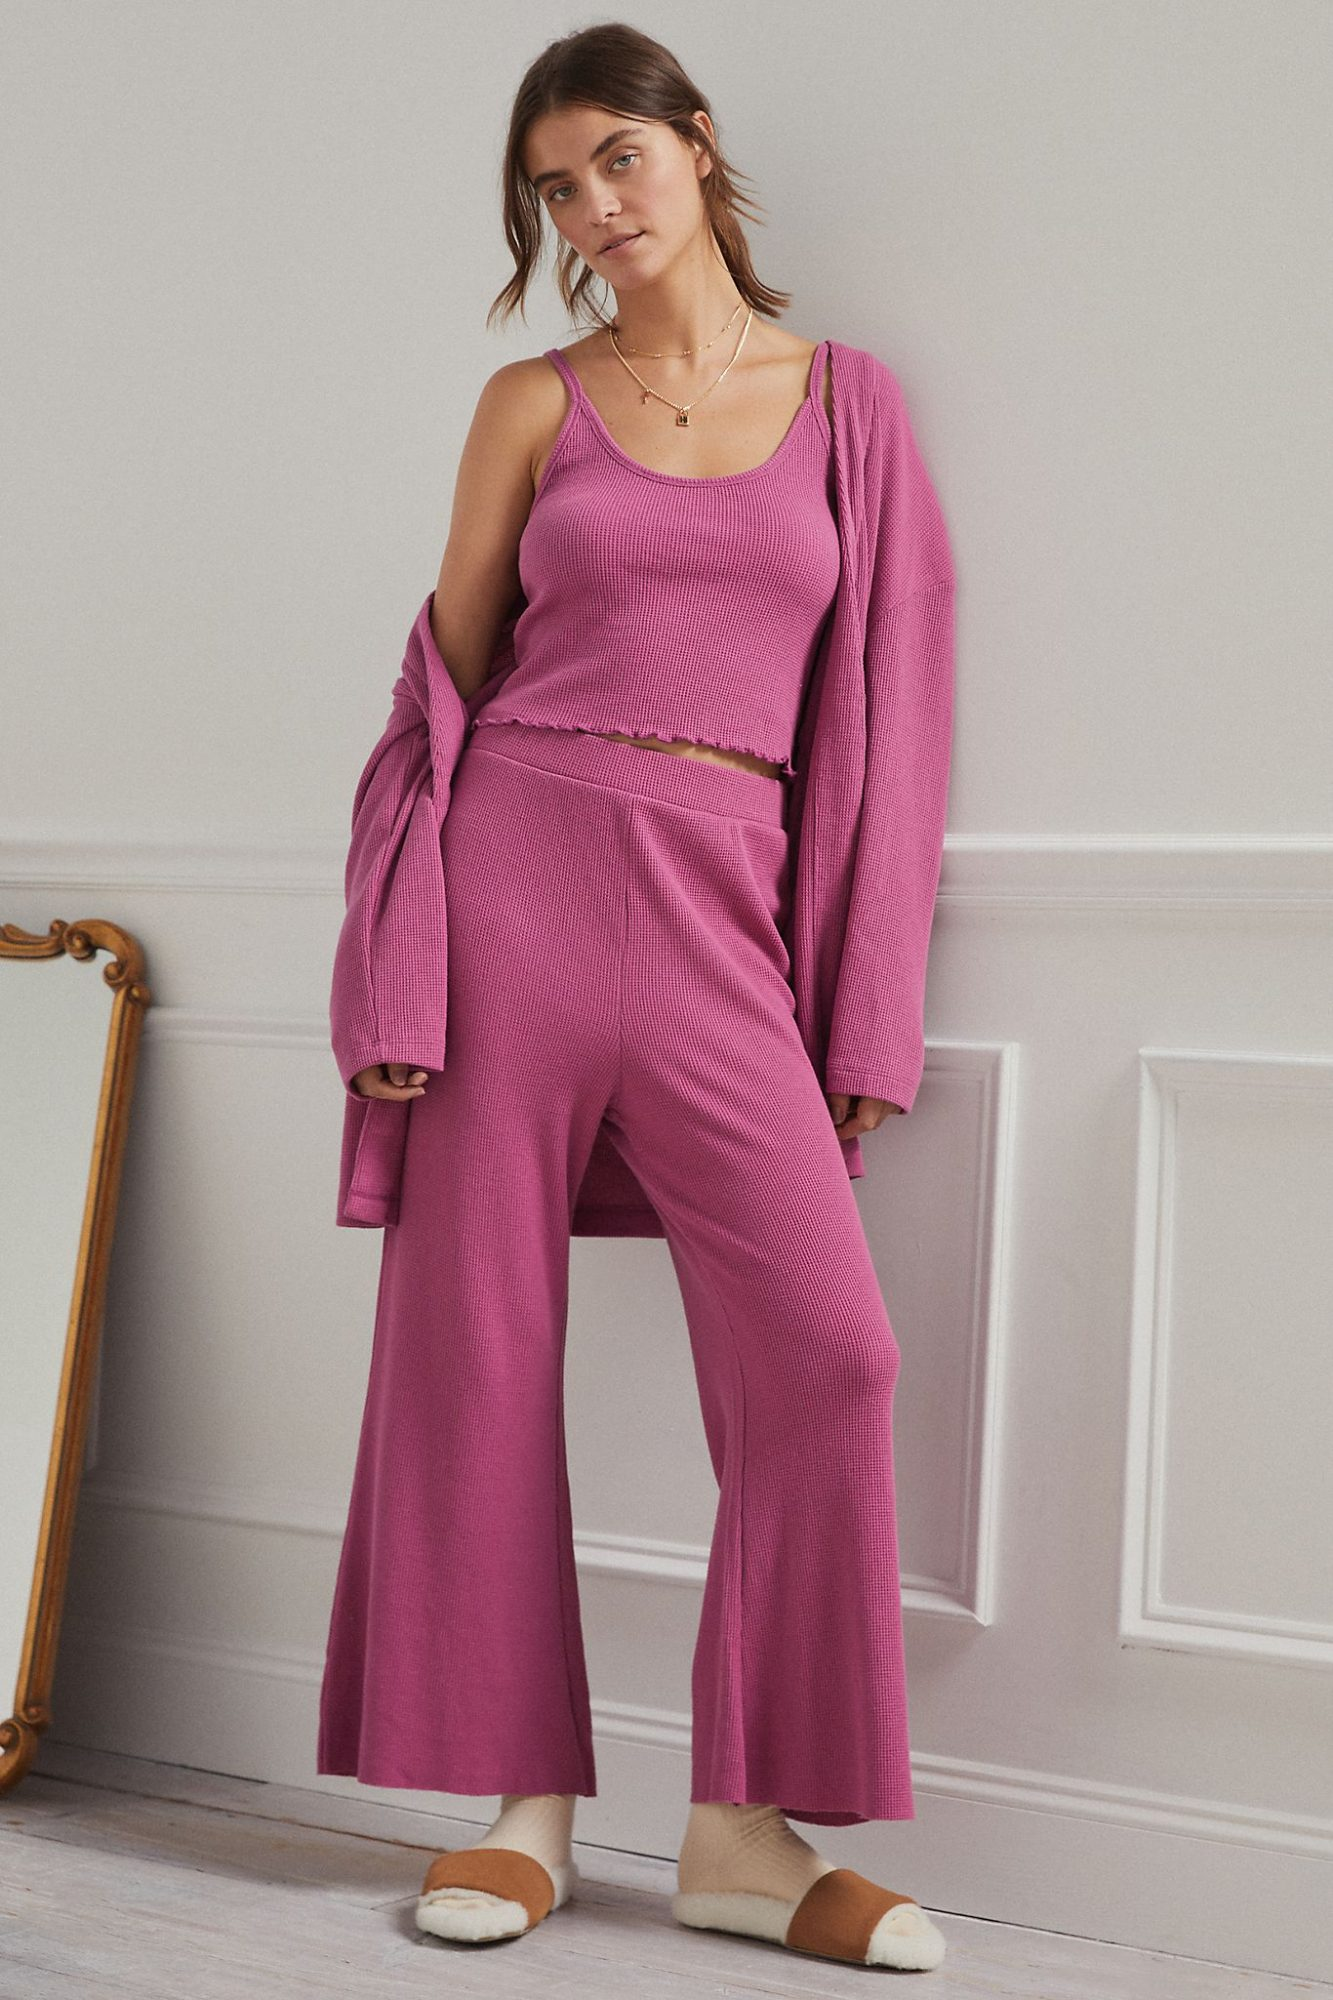 Anthropologie three-piece set loungewear New Years Eve outfit